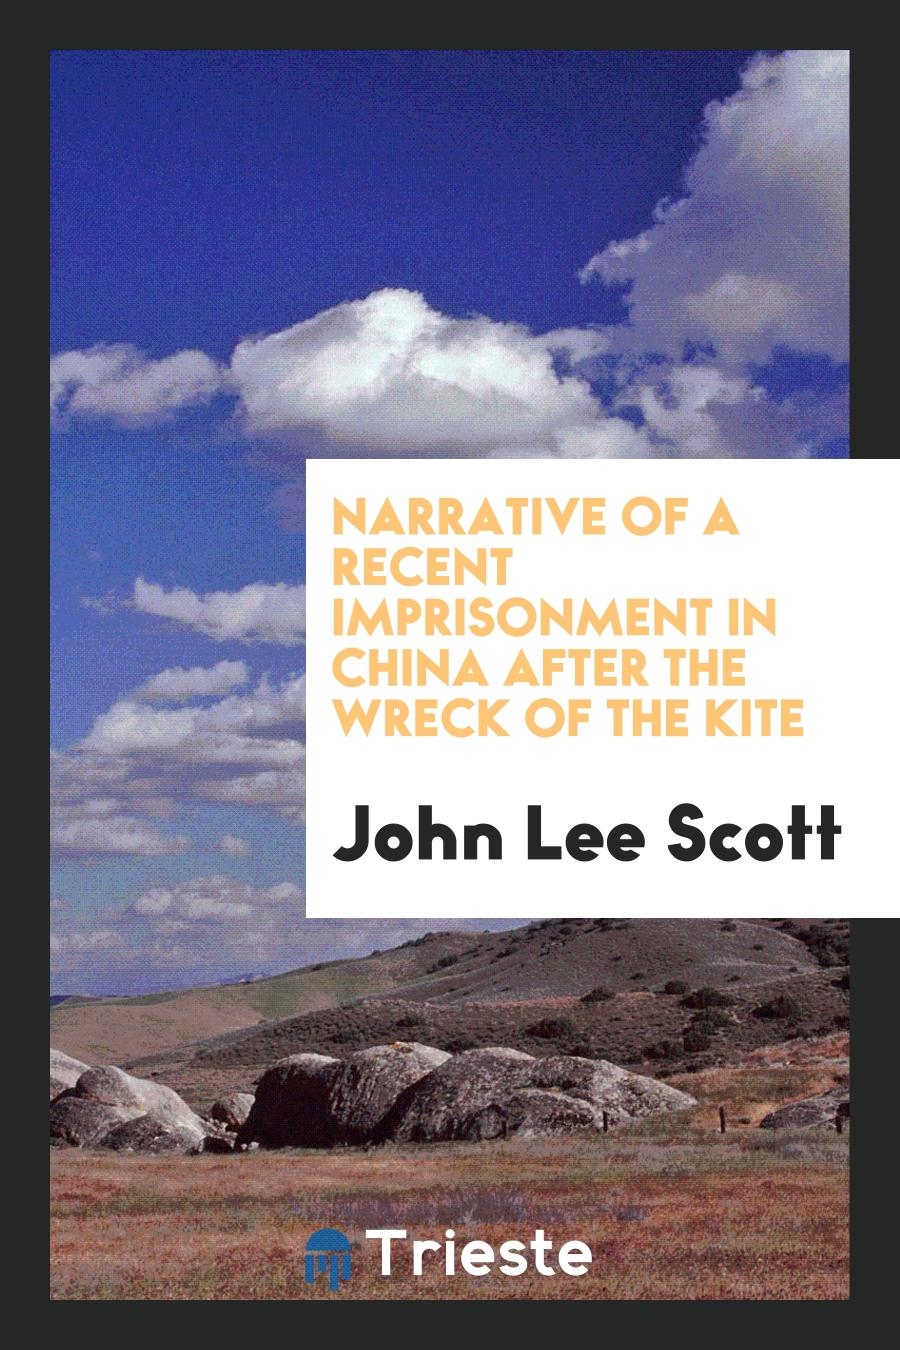 Narrative of a Recent Imprisonment in China After the Wreck of the Kite